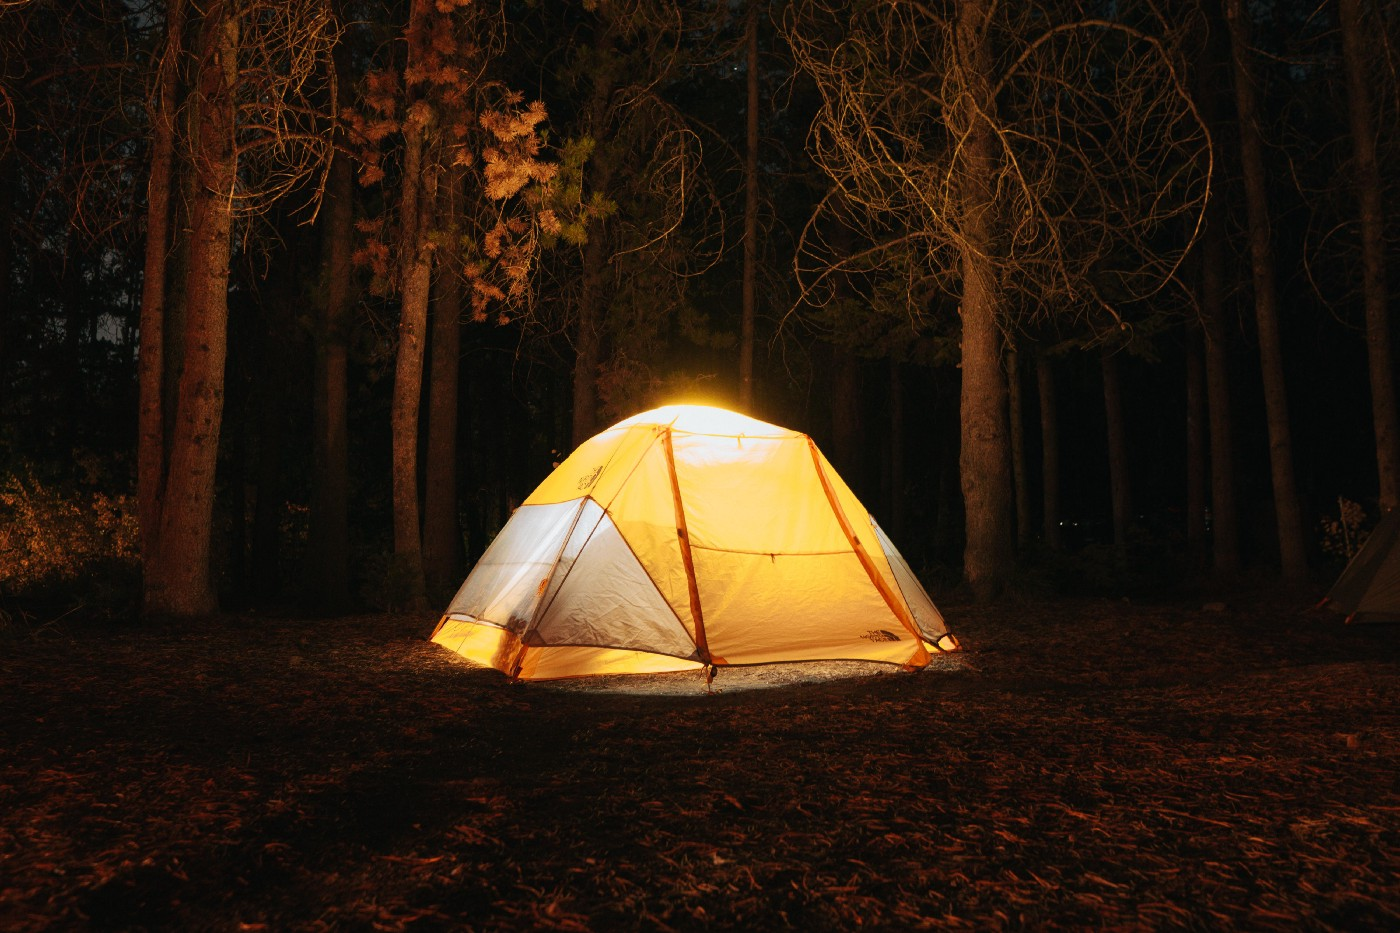 A glowing yellow camp tent in a forest at night